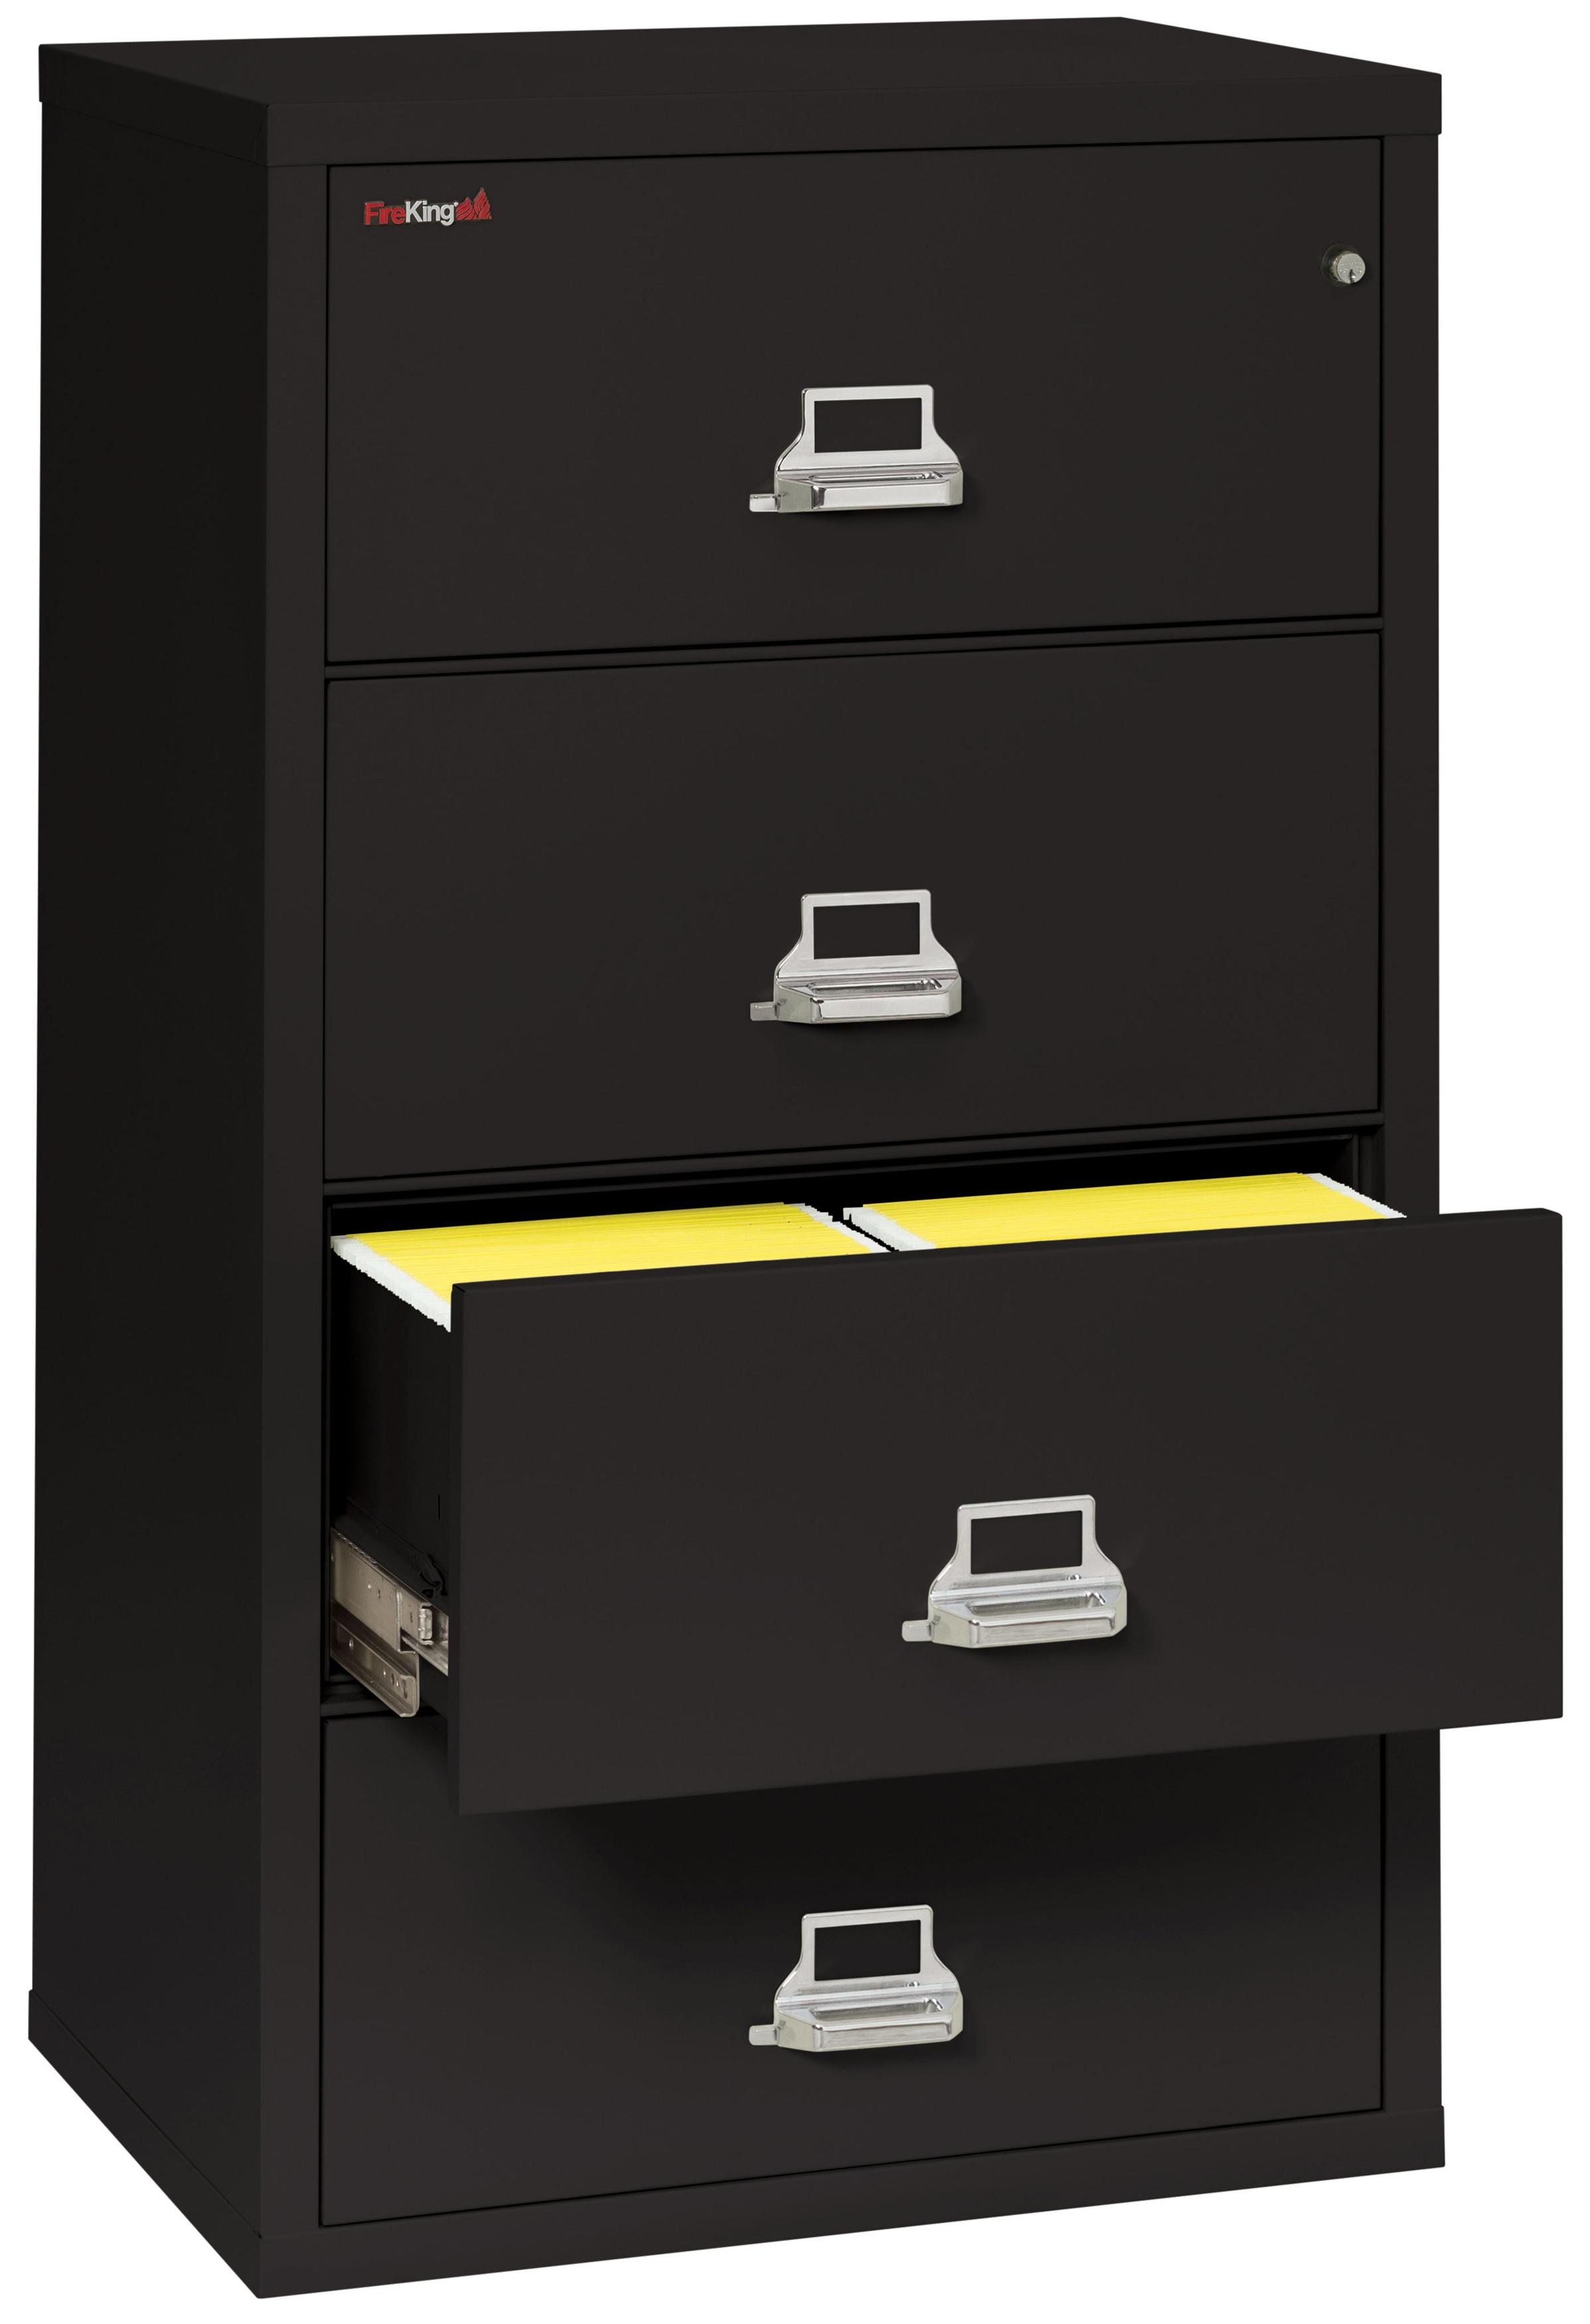 FIR43122CBL - FireKing 4-3122-C File Cabinet: Amazon.ca ...